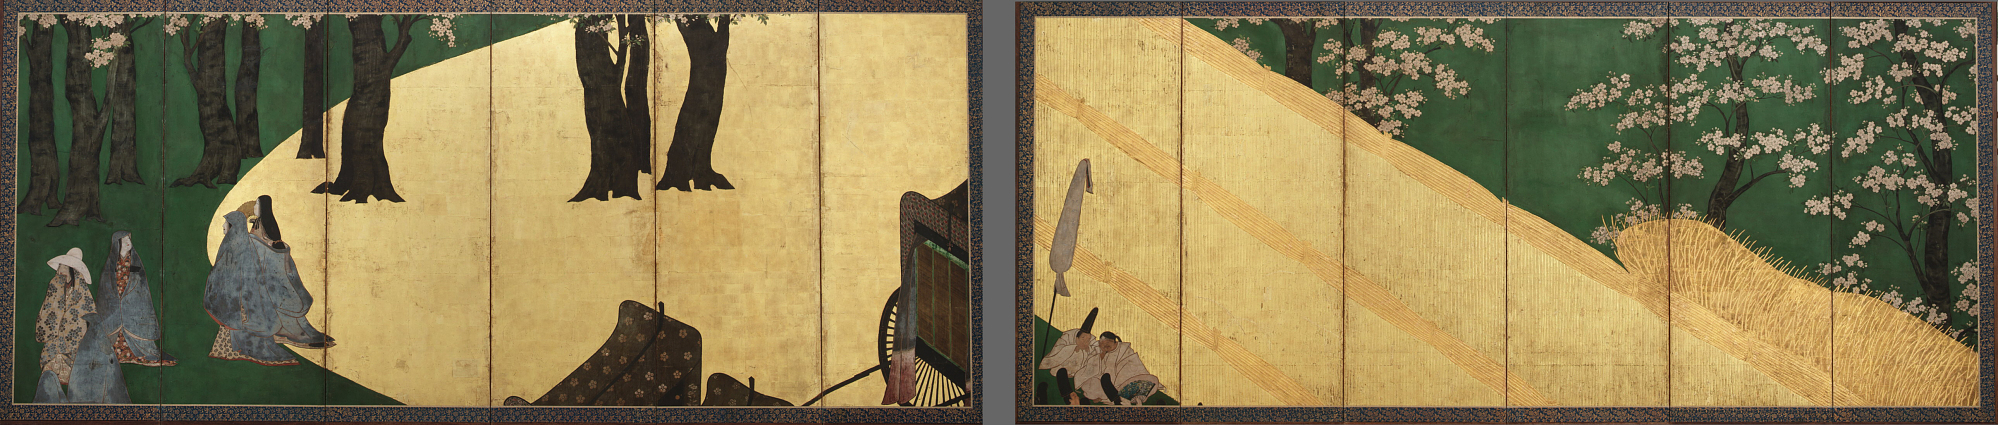 : Court Ladies among cherry trees (left); Cherry blossoms, a high fence and retainers (right)